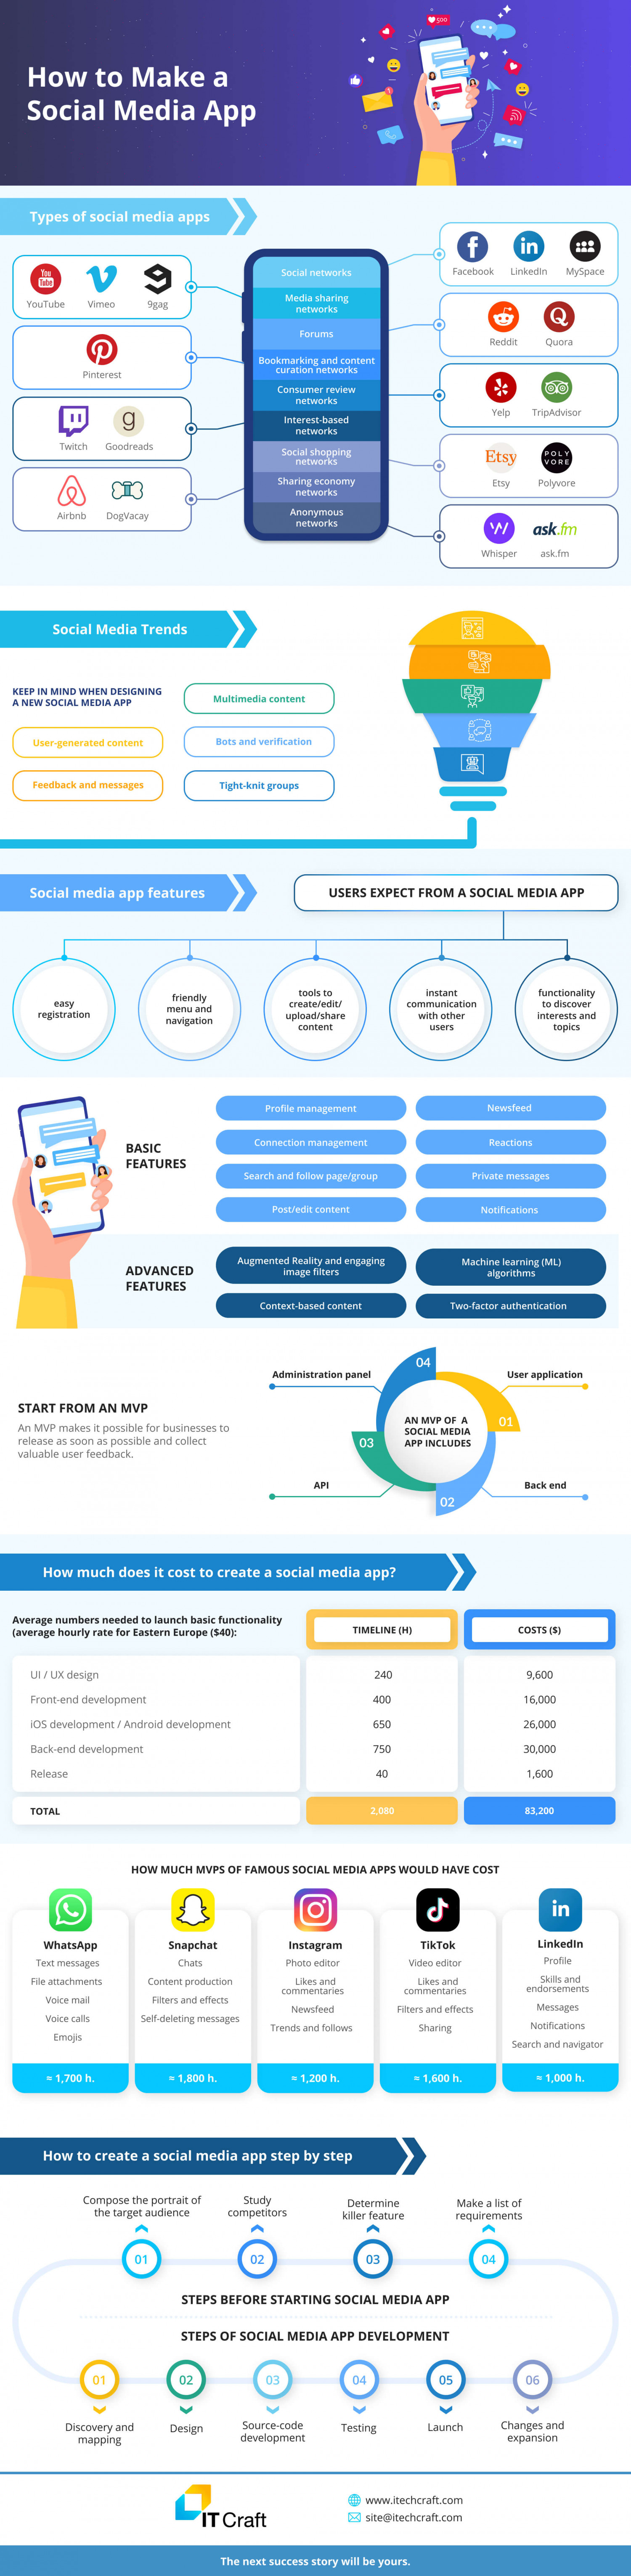 How to Make a Social Media App in 2021? Infographic